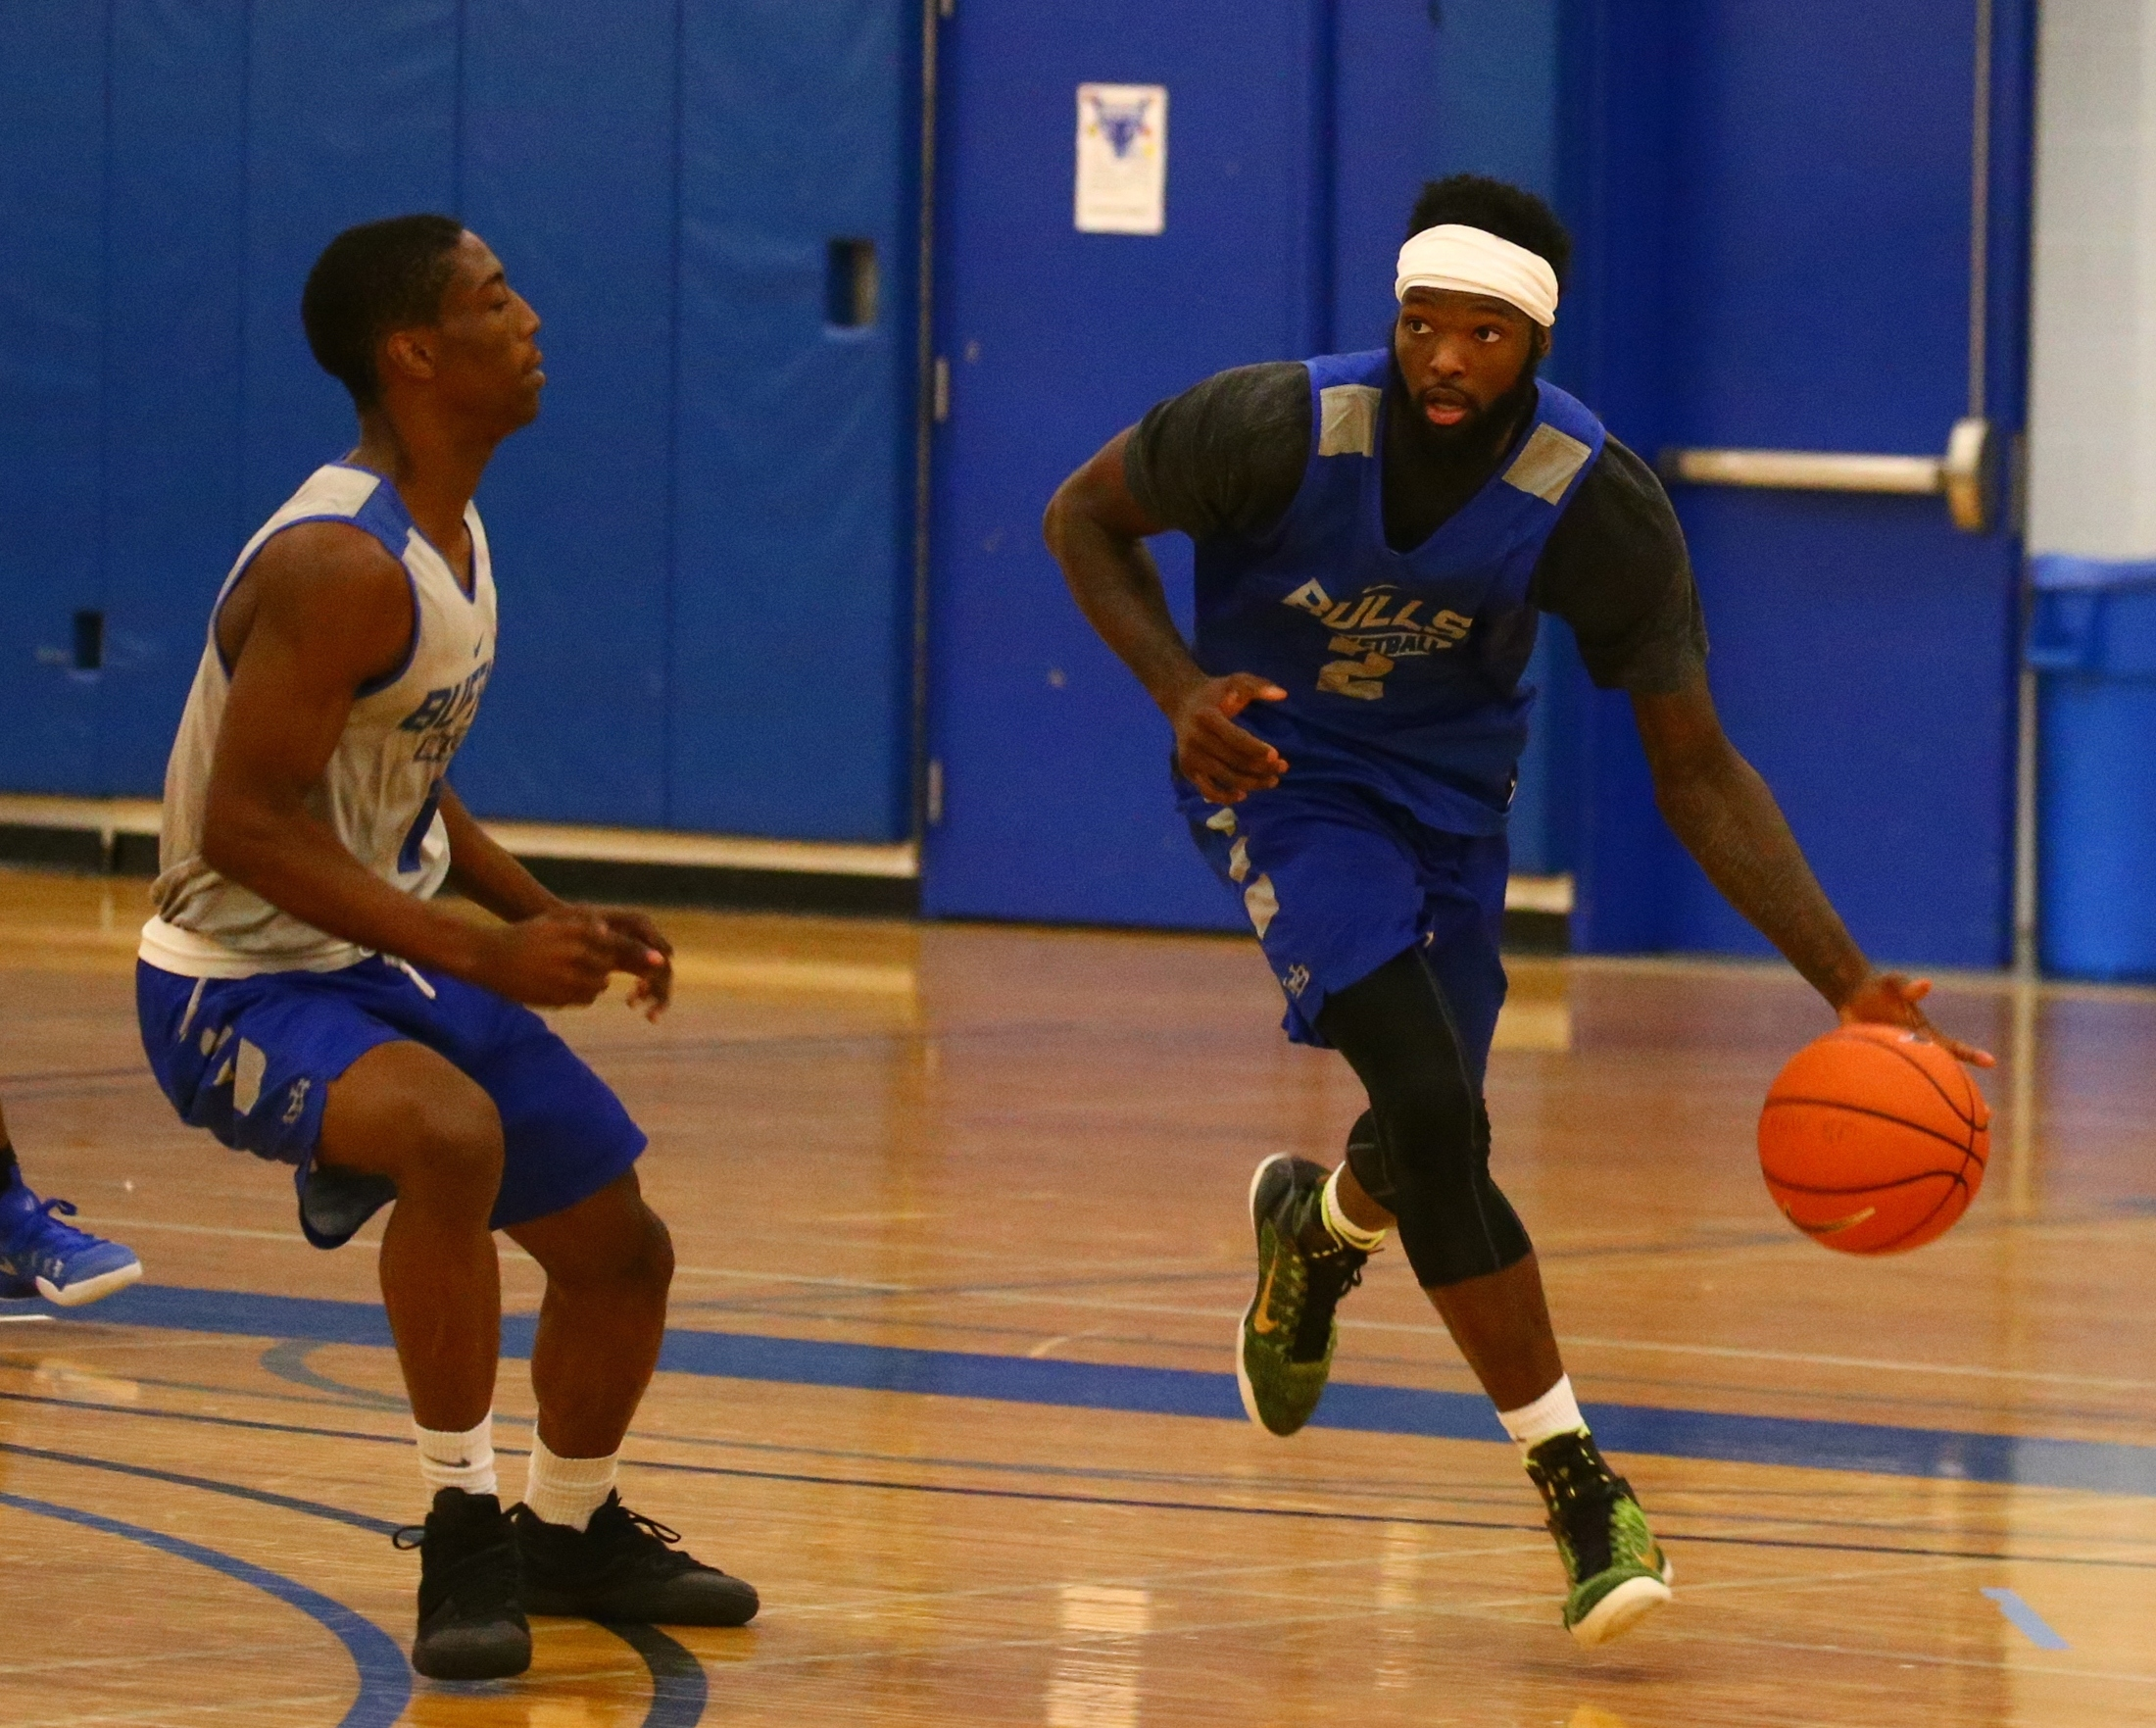 James Jones defends Willie Conner on the dribble at UB practice. (John Hickey/Buffalo News)